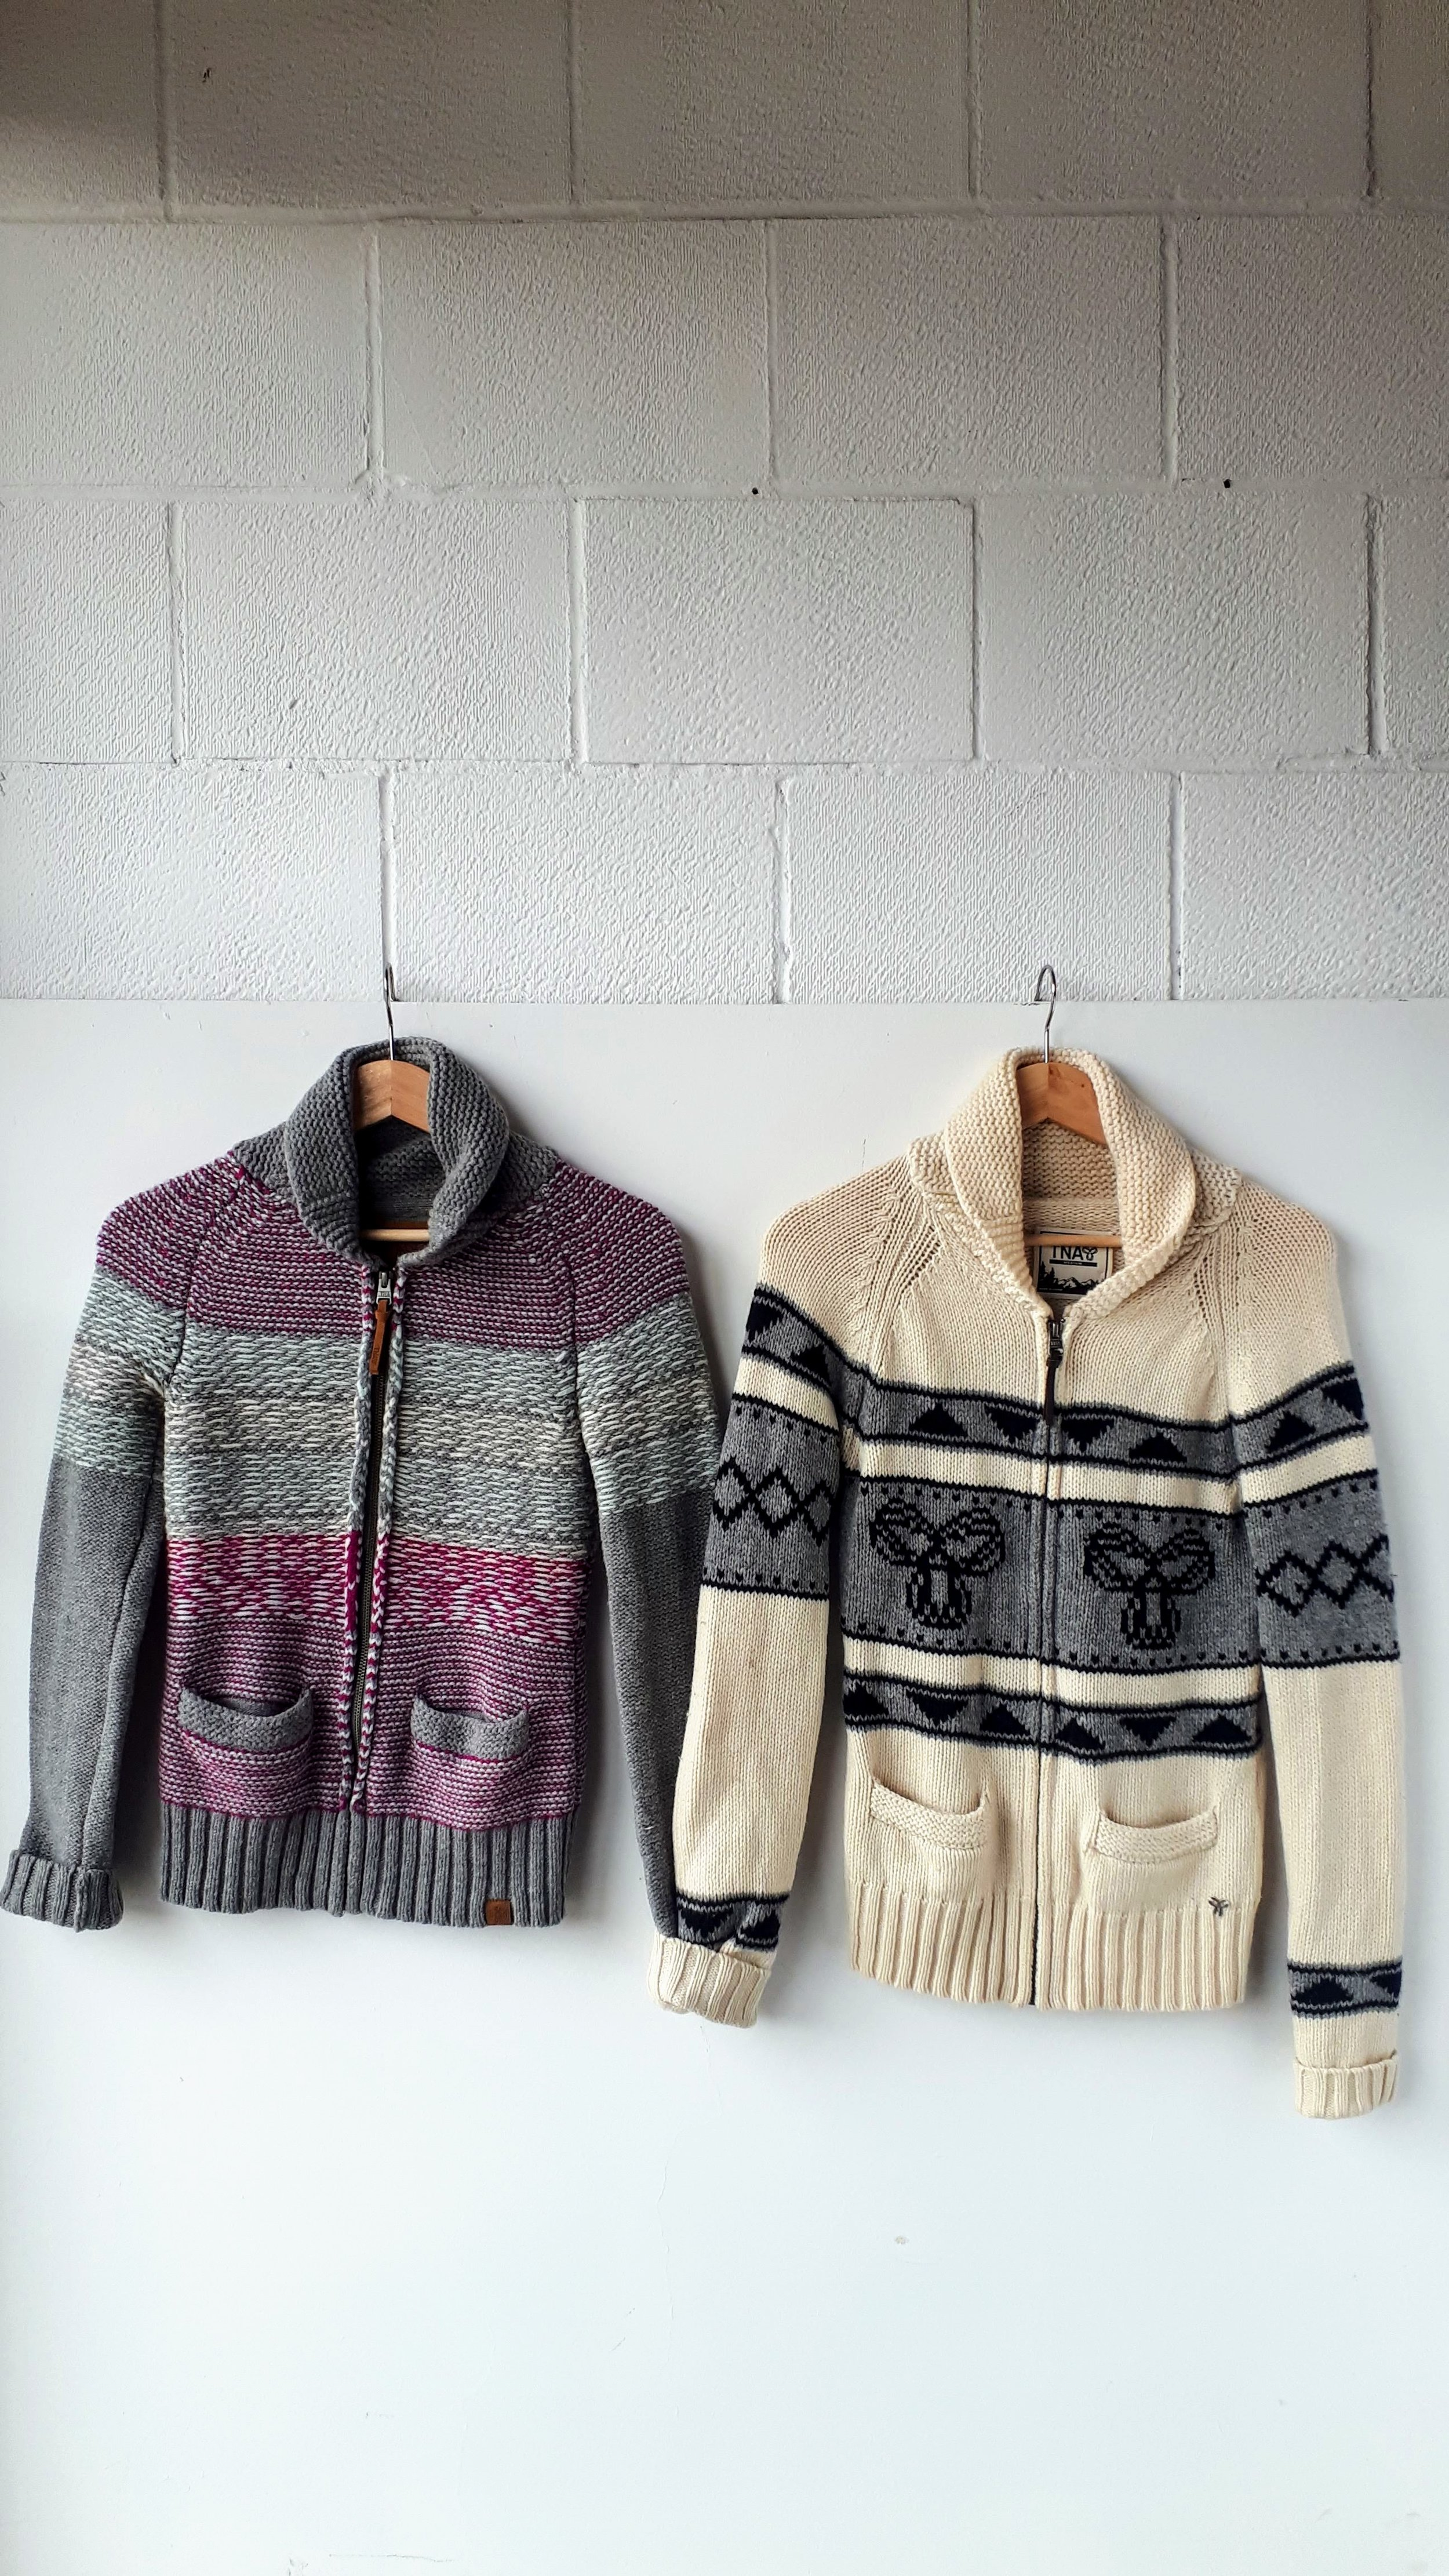 Pink TNA sweater; Size S, $34. Cream TNA sweater; Size M, $34